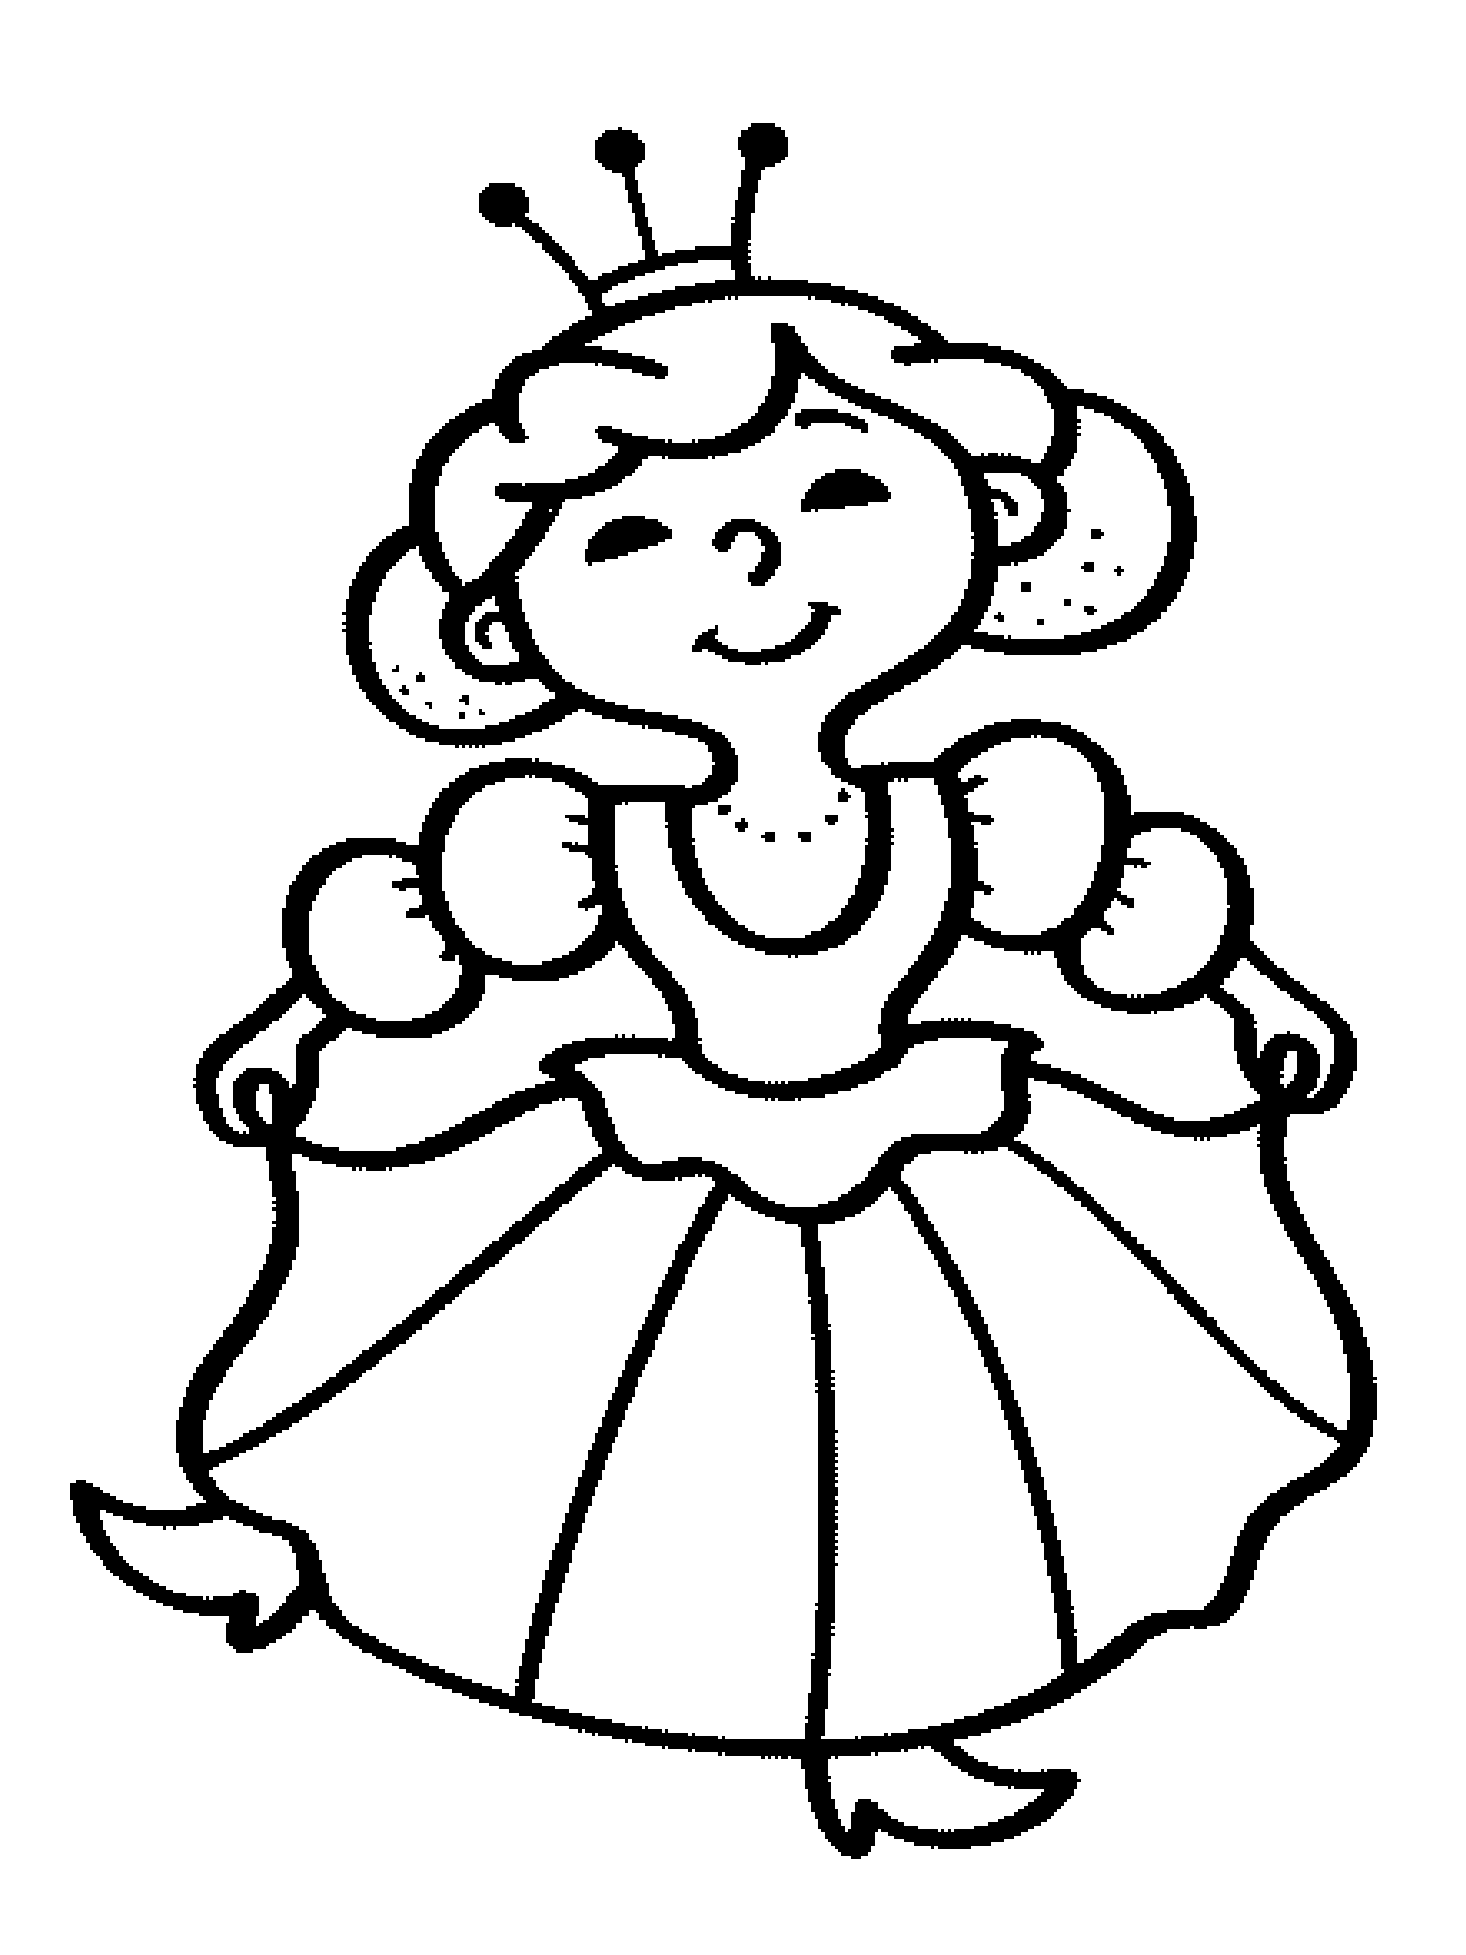 Fairy tales coloring pages Clipart Panda Free Clipart Images